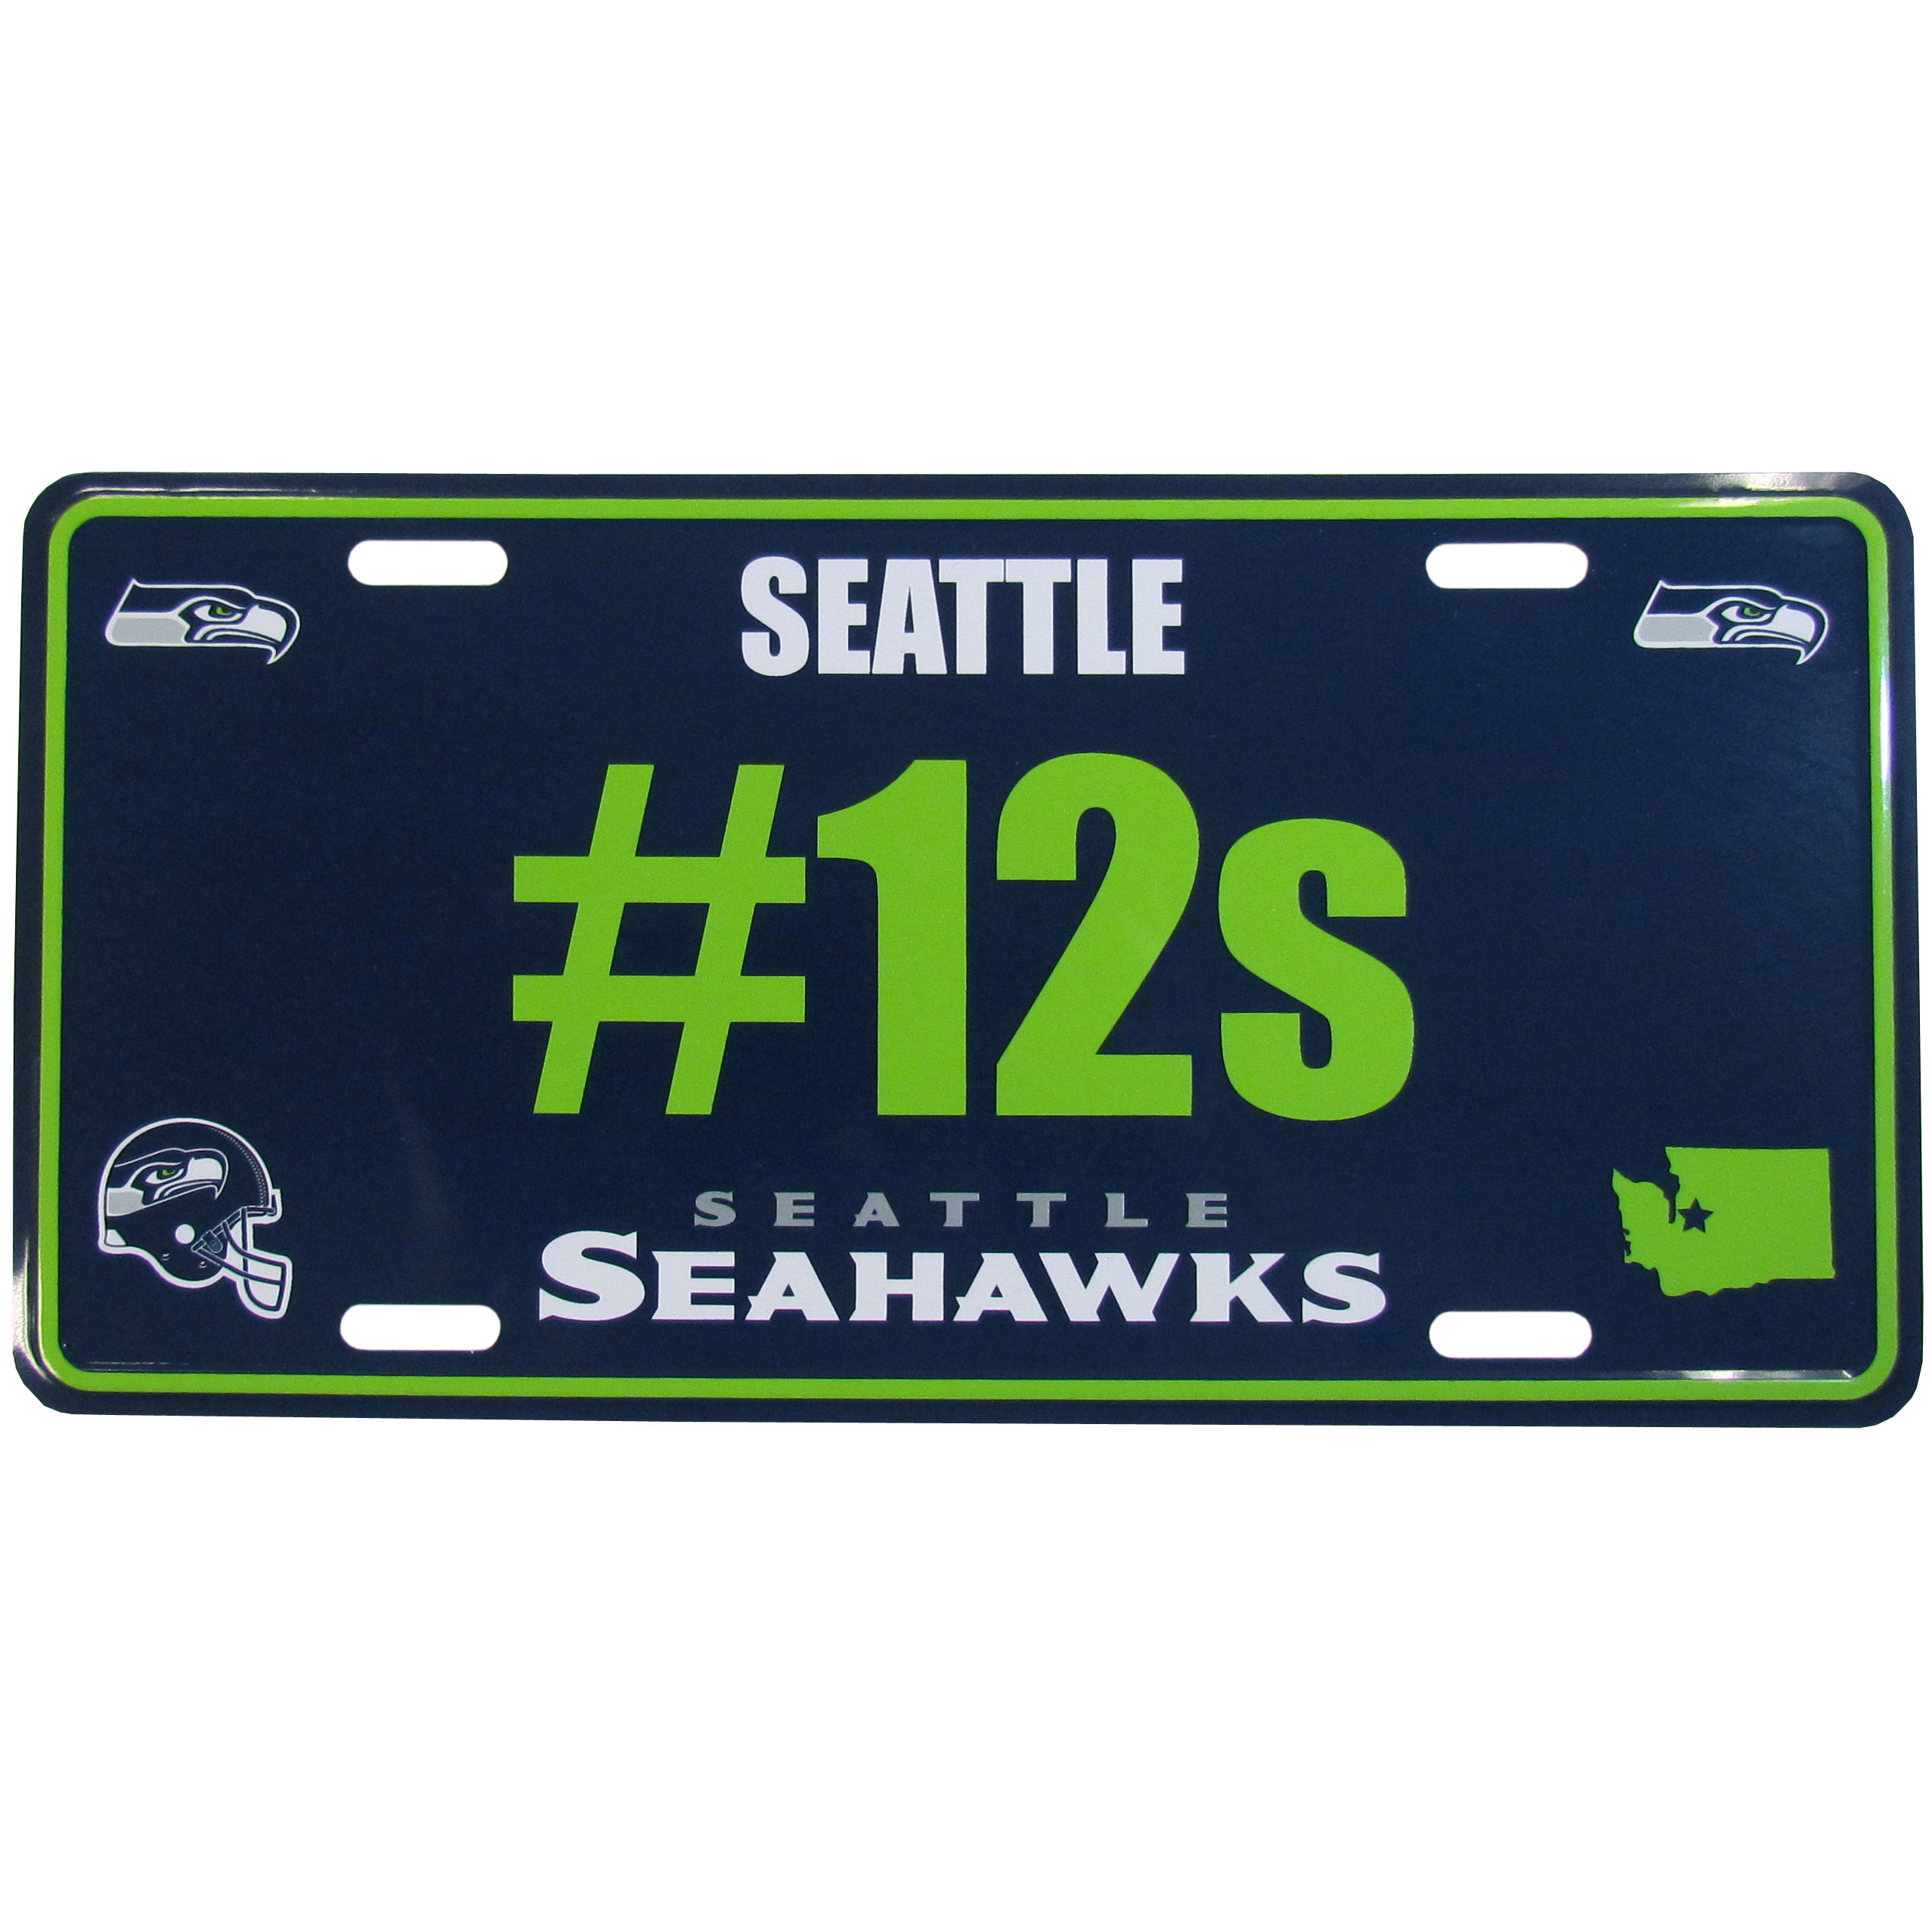 Seattle Seahawks Hashtag License Plate - It's a hashtag world! Celebrate the Seattle Seahawks with this stamped aluminum license plate with the most popular team hashtag! This bright license plate will look great on your vehicle or mounted in your fan cave.